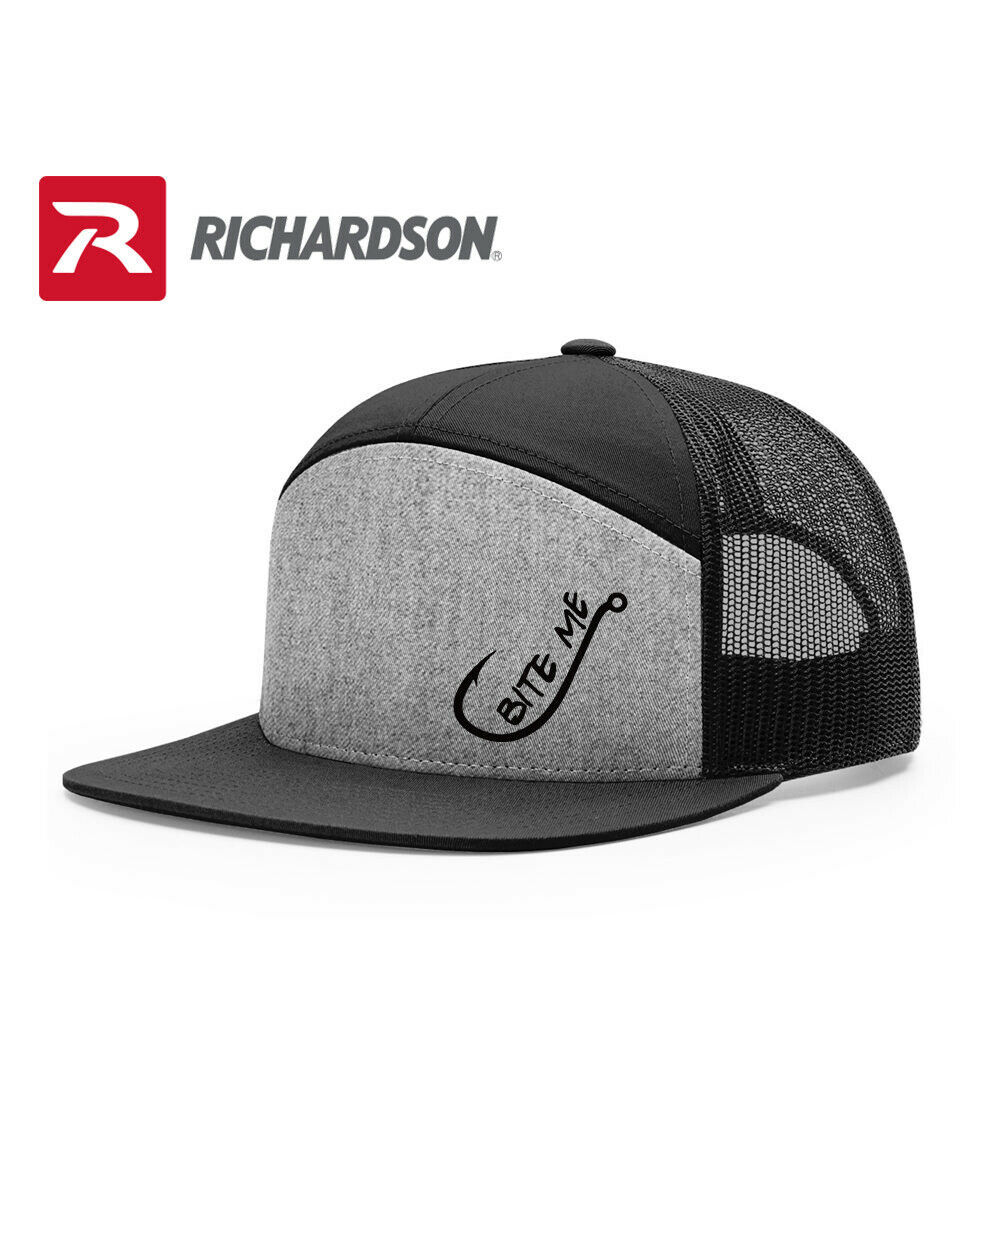 Primary image for FISHERMAN BITE ME FISHING RICHARDSON FLAT BILL SNAPBACK HAT SHIPPING in BOX*